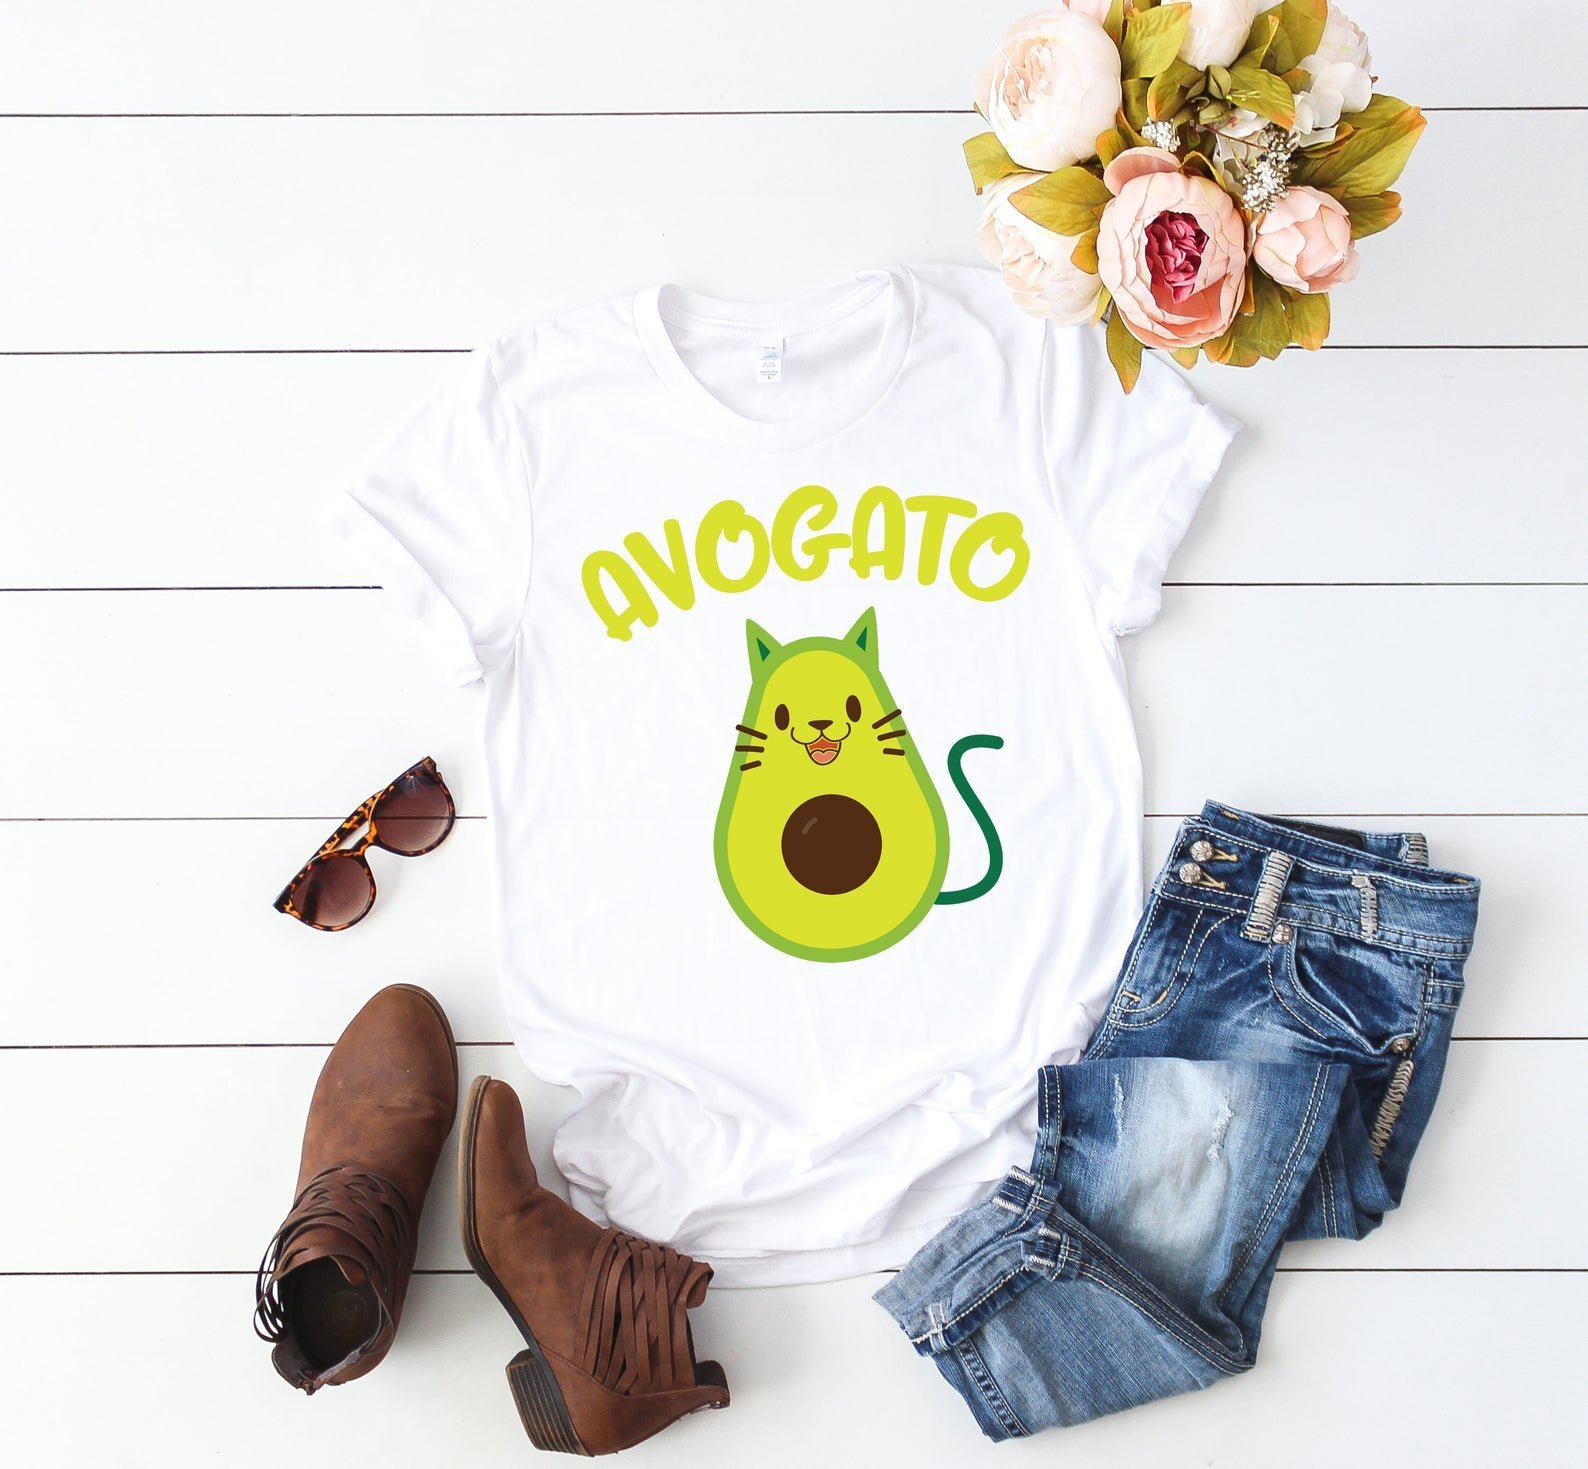 white t shirt with picture of avocado with cat face and tail that says avocato in green